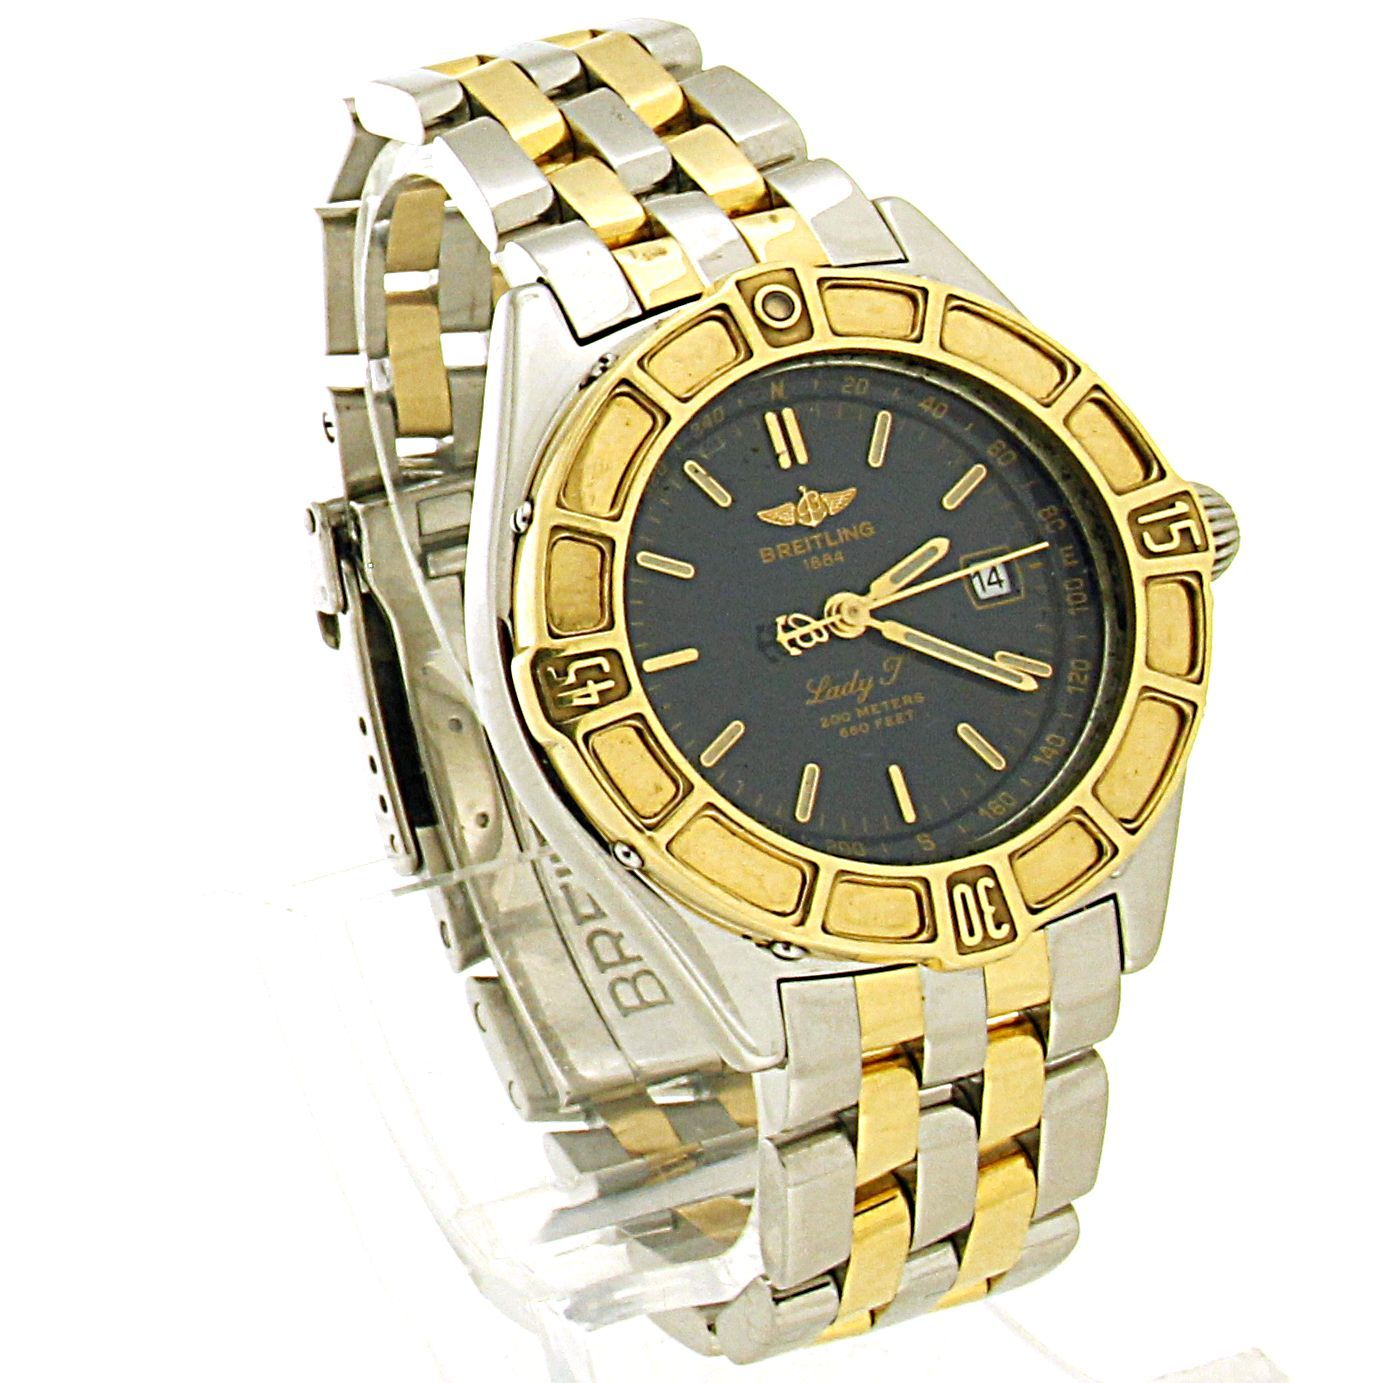 Breitling Lady J My Style Vintage Watches Breitling Watches